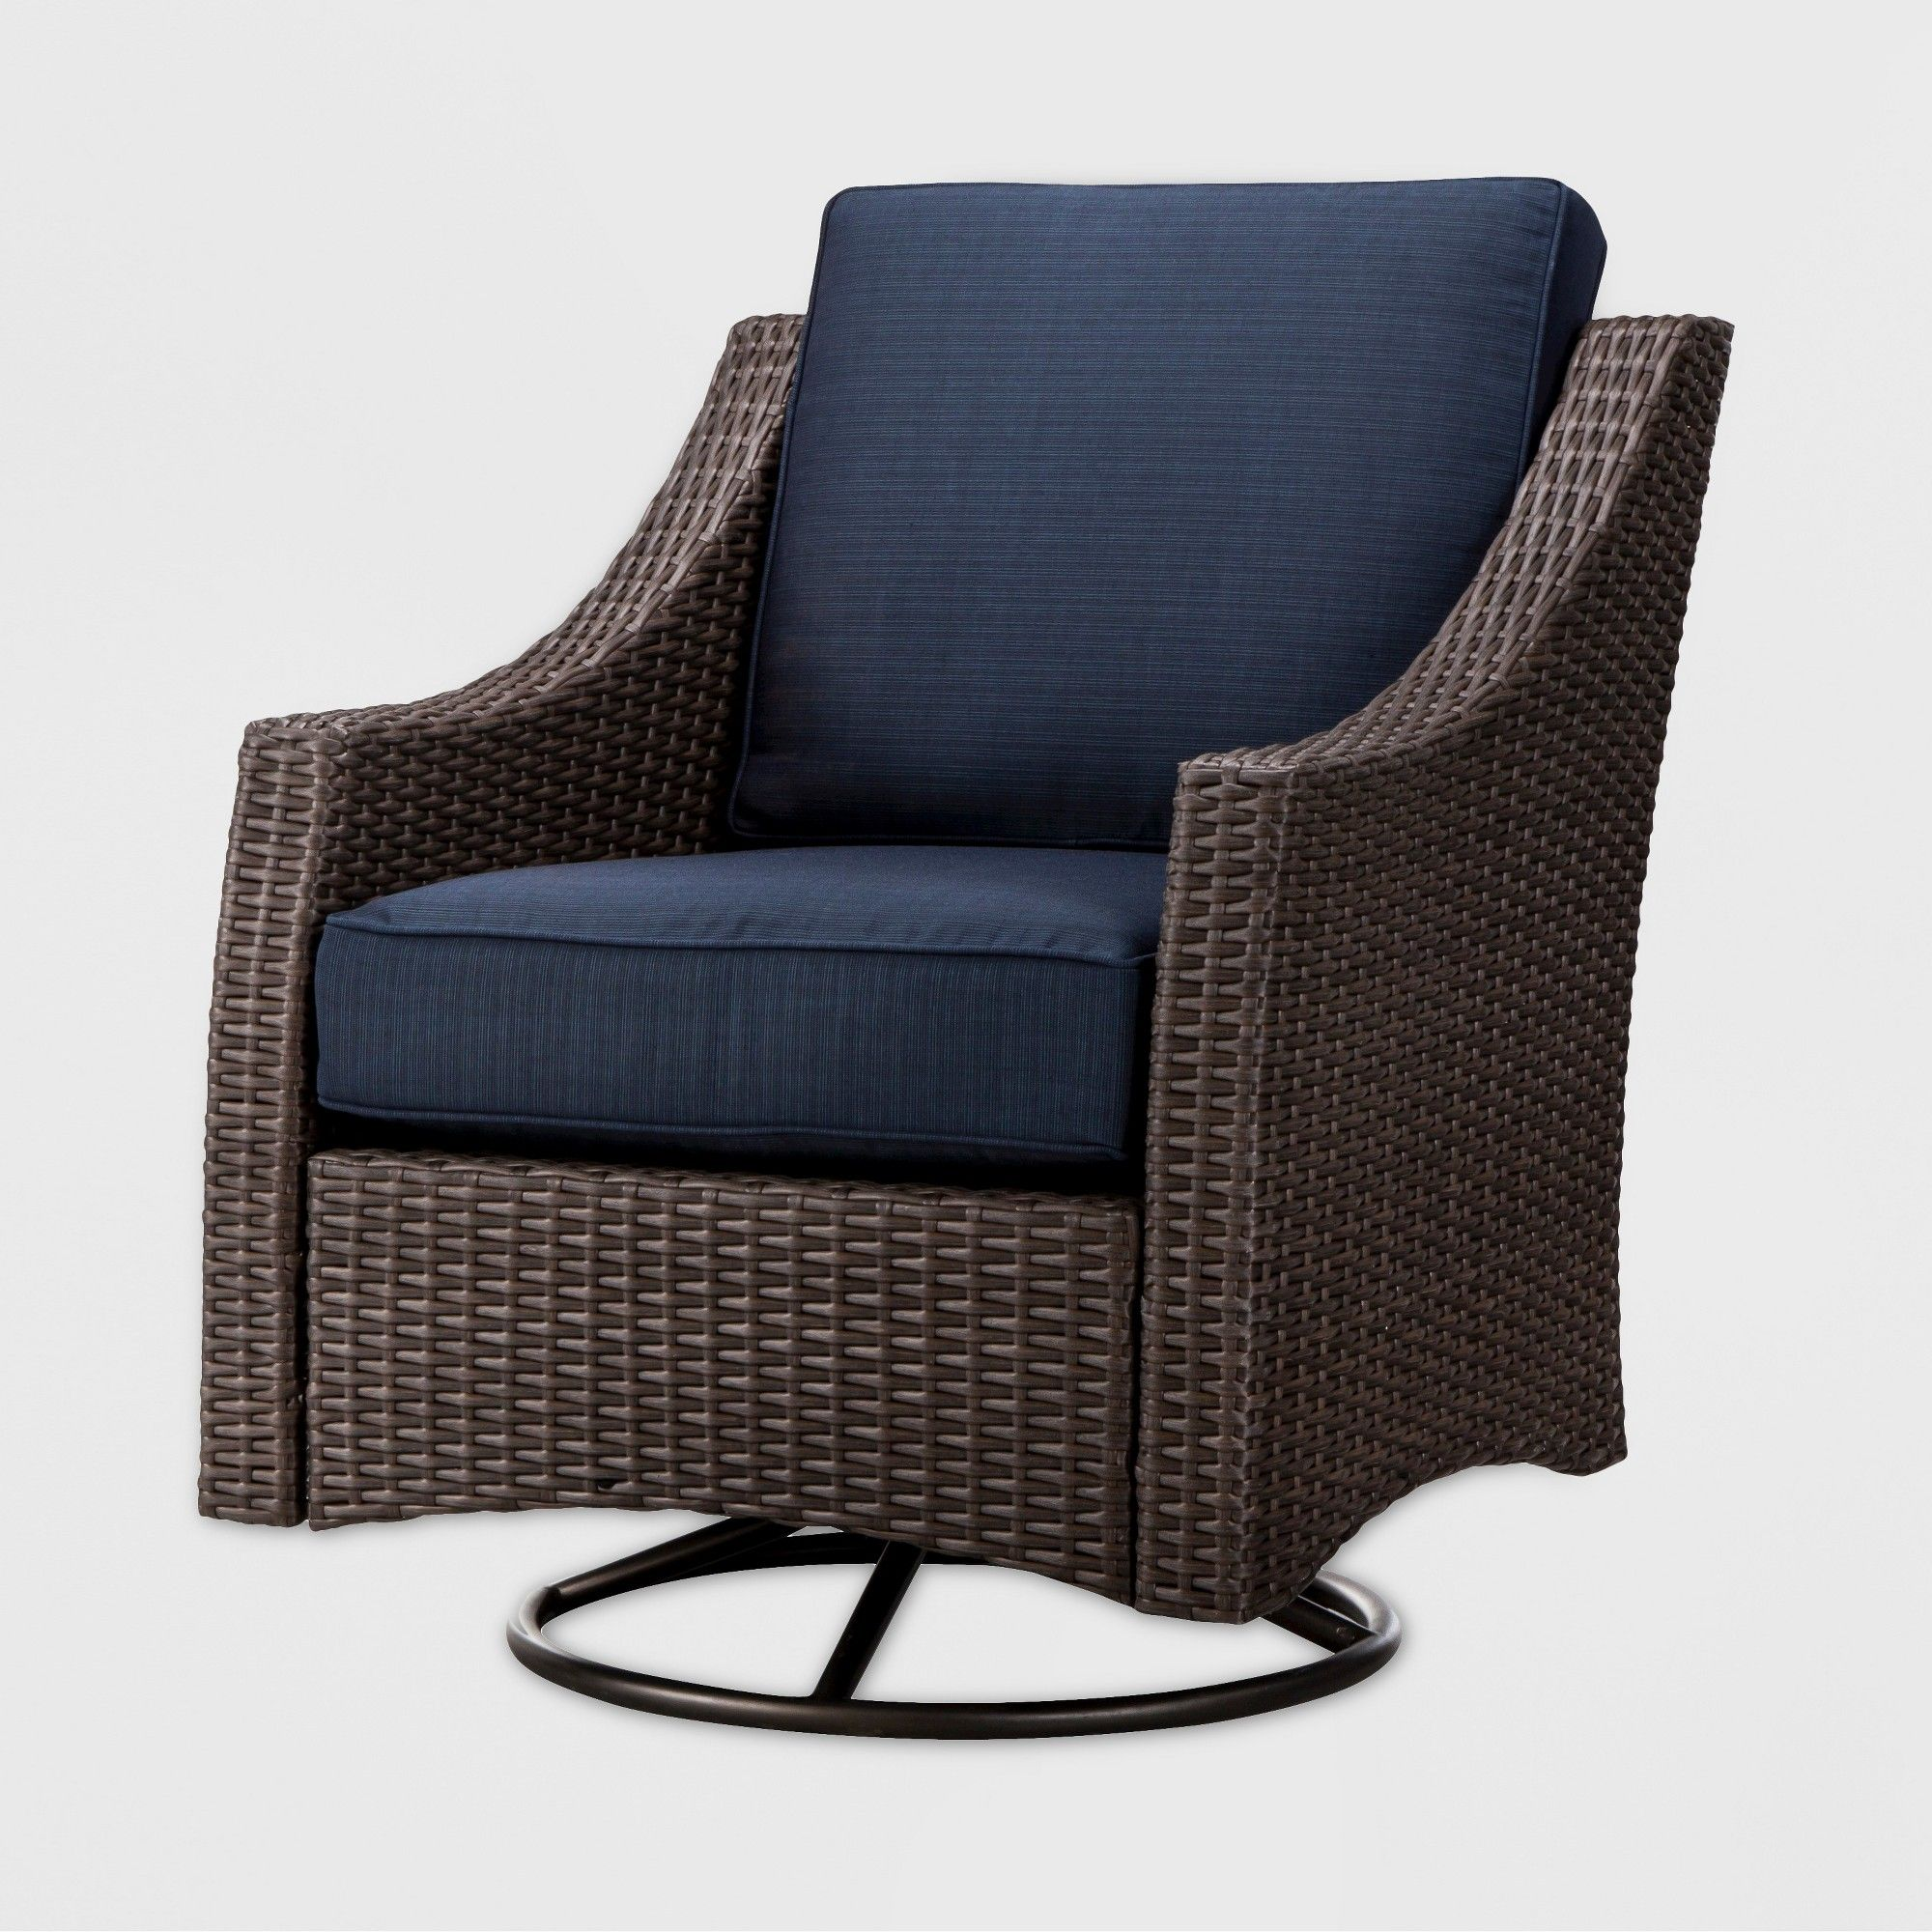 Wondrous Belvedere Wicker Swivel Rocker Patio Club Chair Navy Onthecornerstone Fun Painted Chair Ideas Images Onthecornerstoneorg